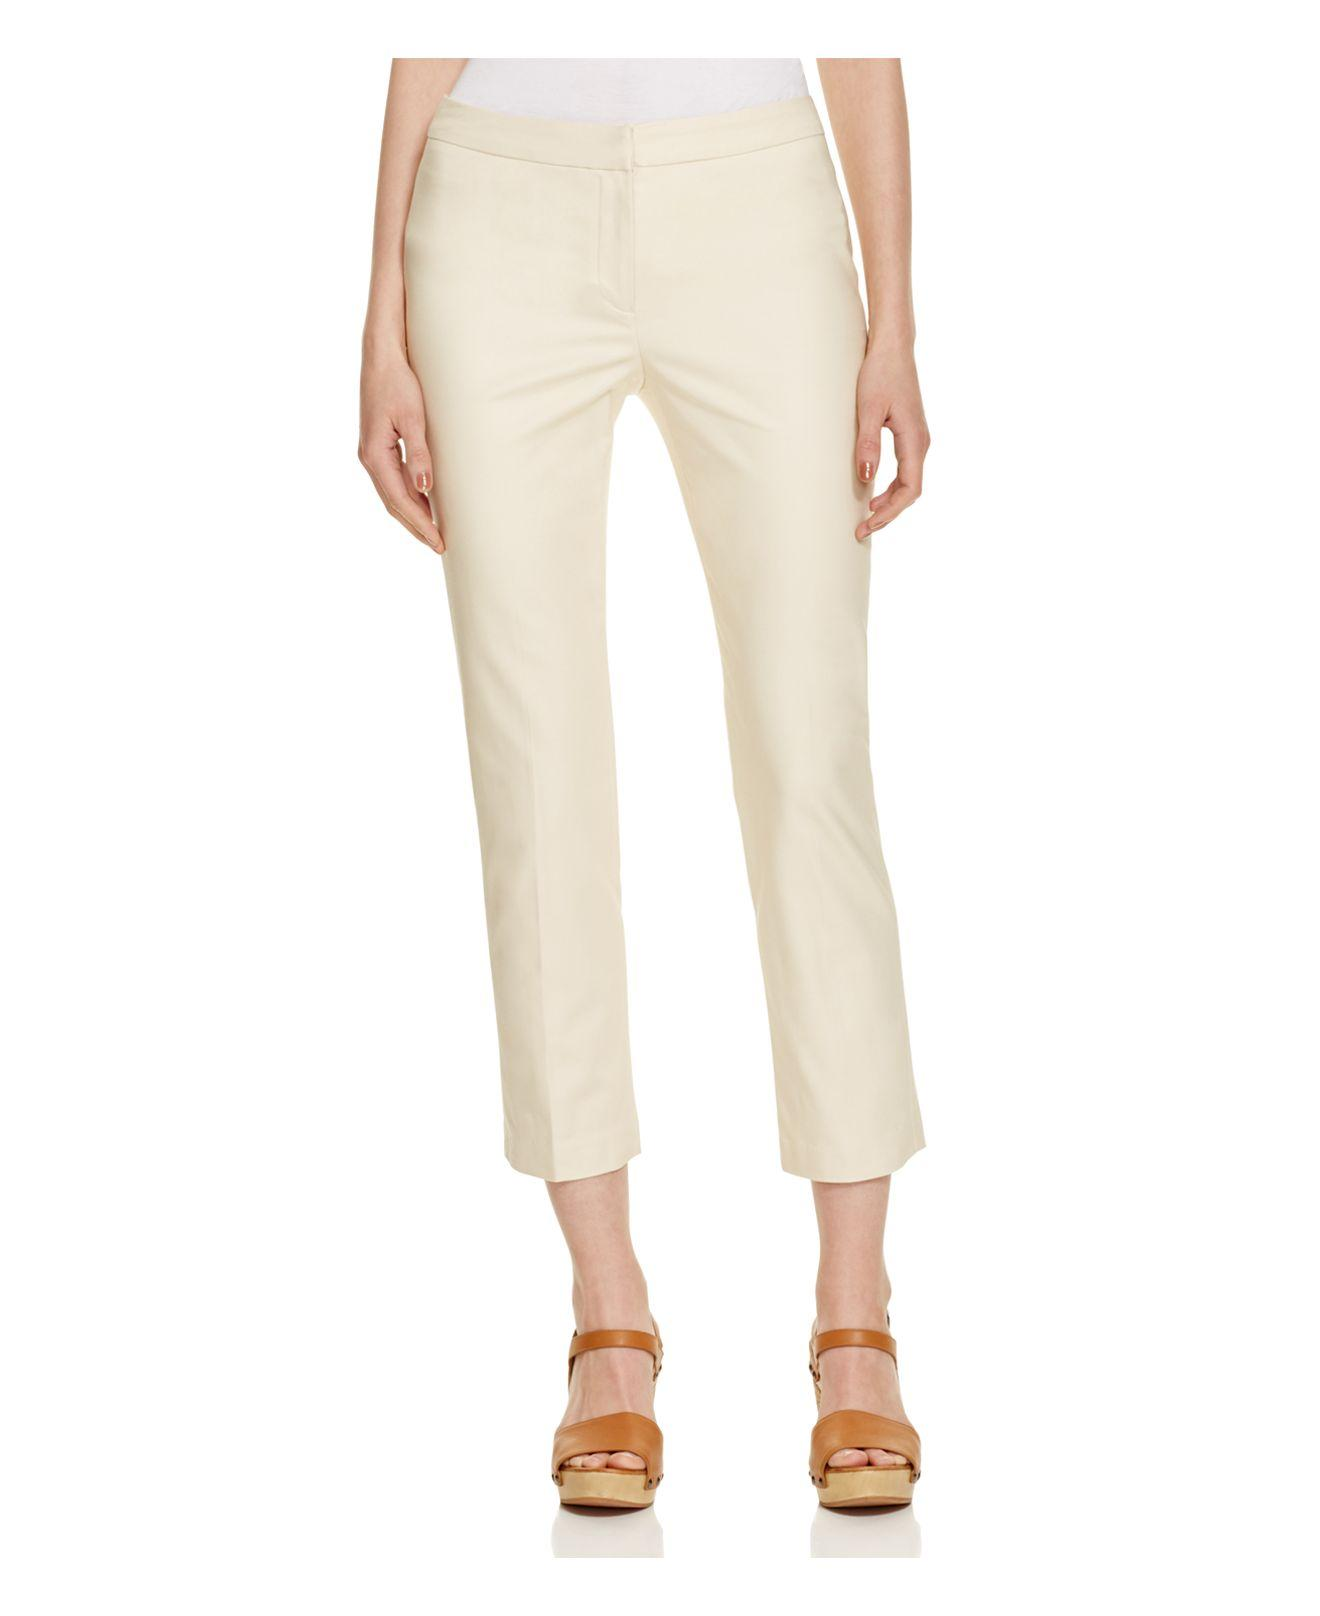 Nic+zoe Nic+zoe The Perfect Pants in Natural